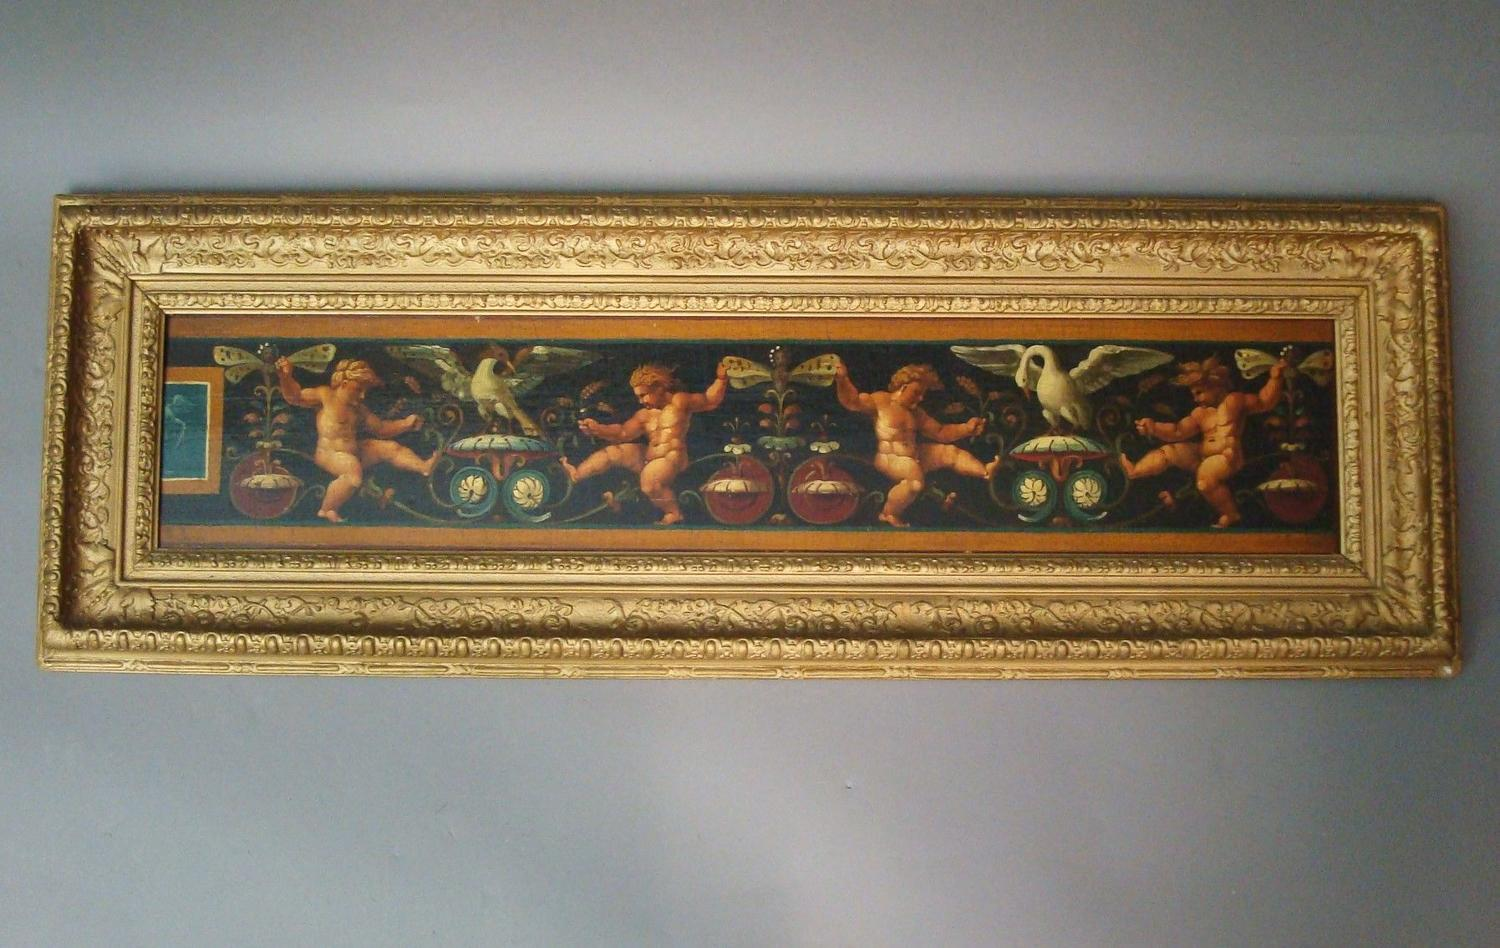 C19th Oil painting of classical frieze scene